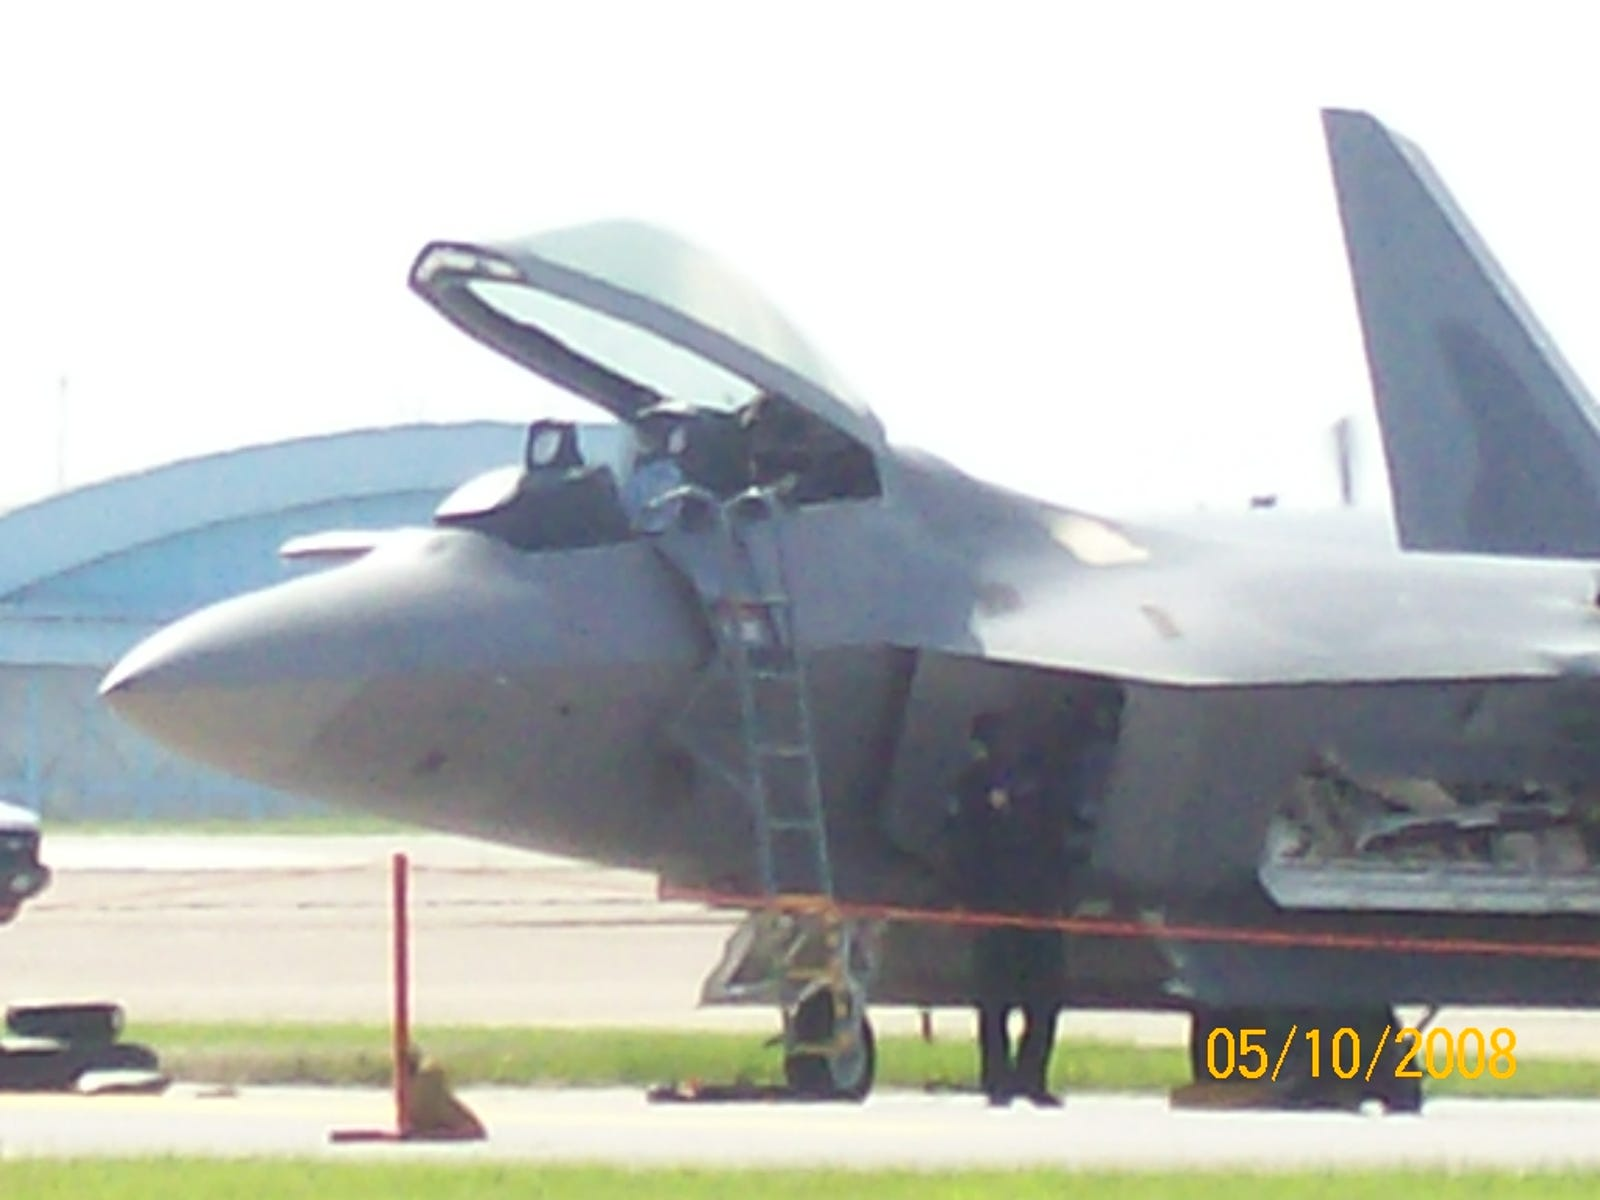 F-22A Raptor. Whole reason for coming to the show, right there.